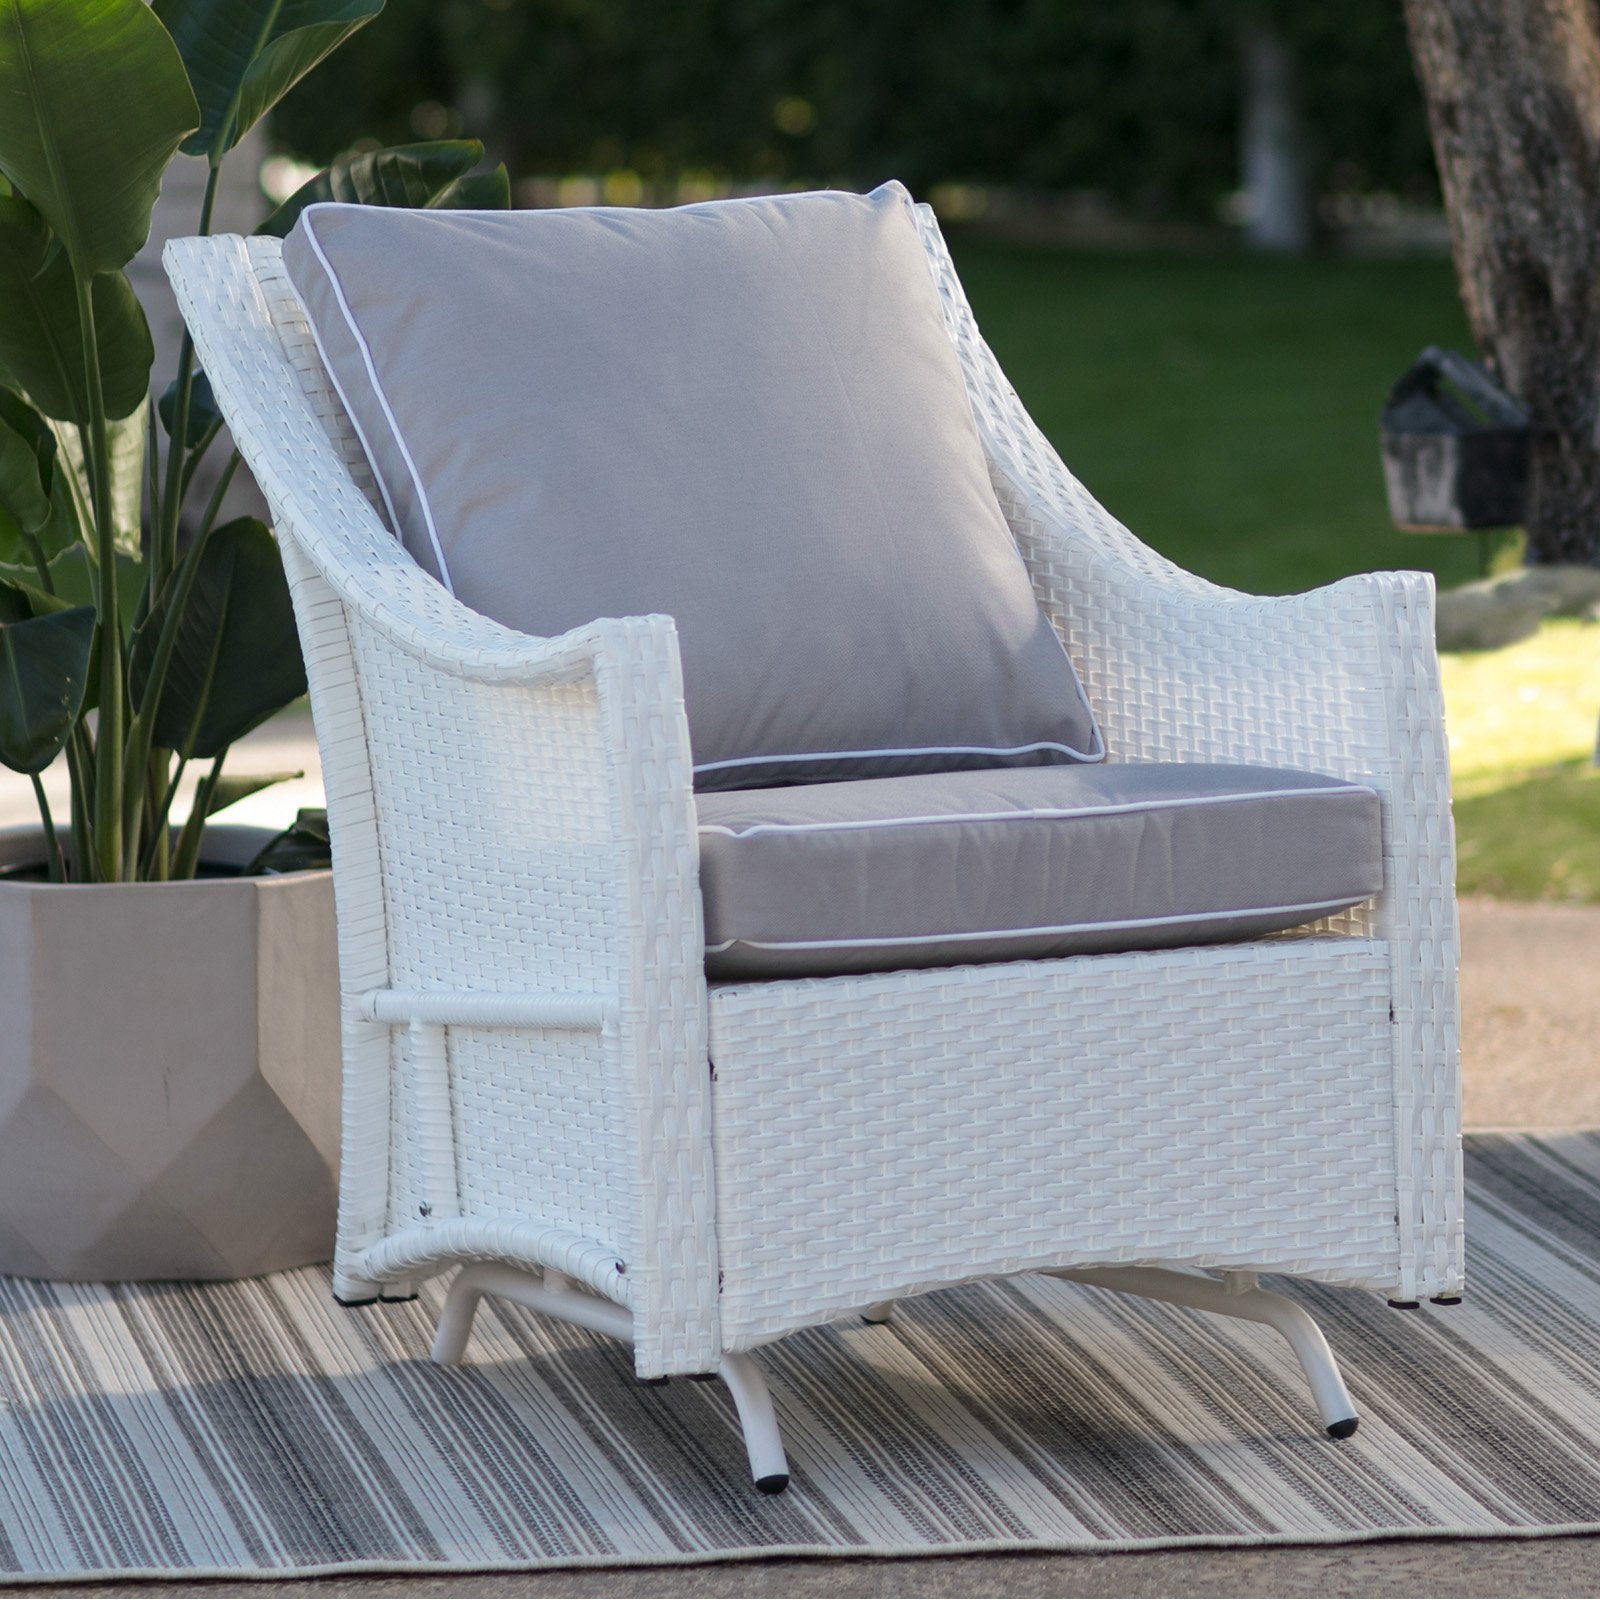 Belham Living Lindau All Weather Wicker Glider Chair With Cushion   White